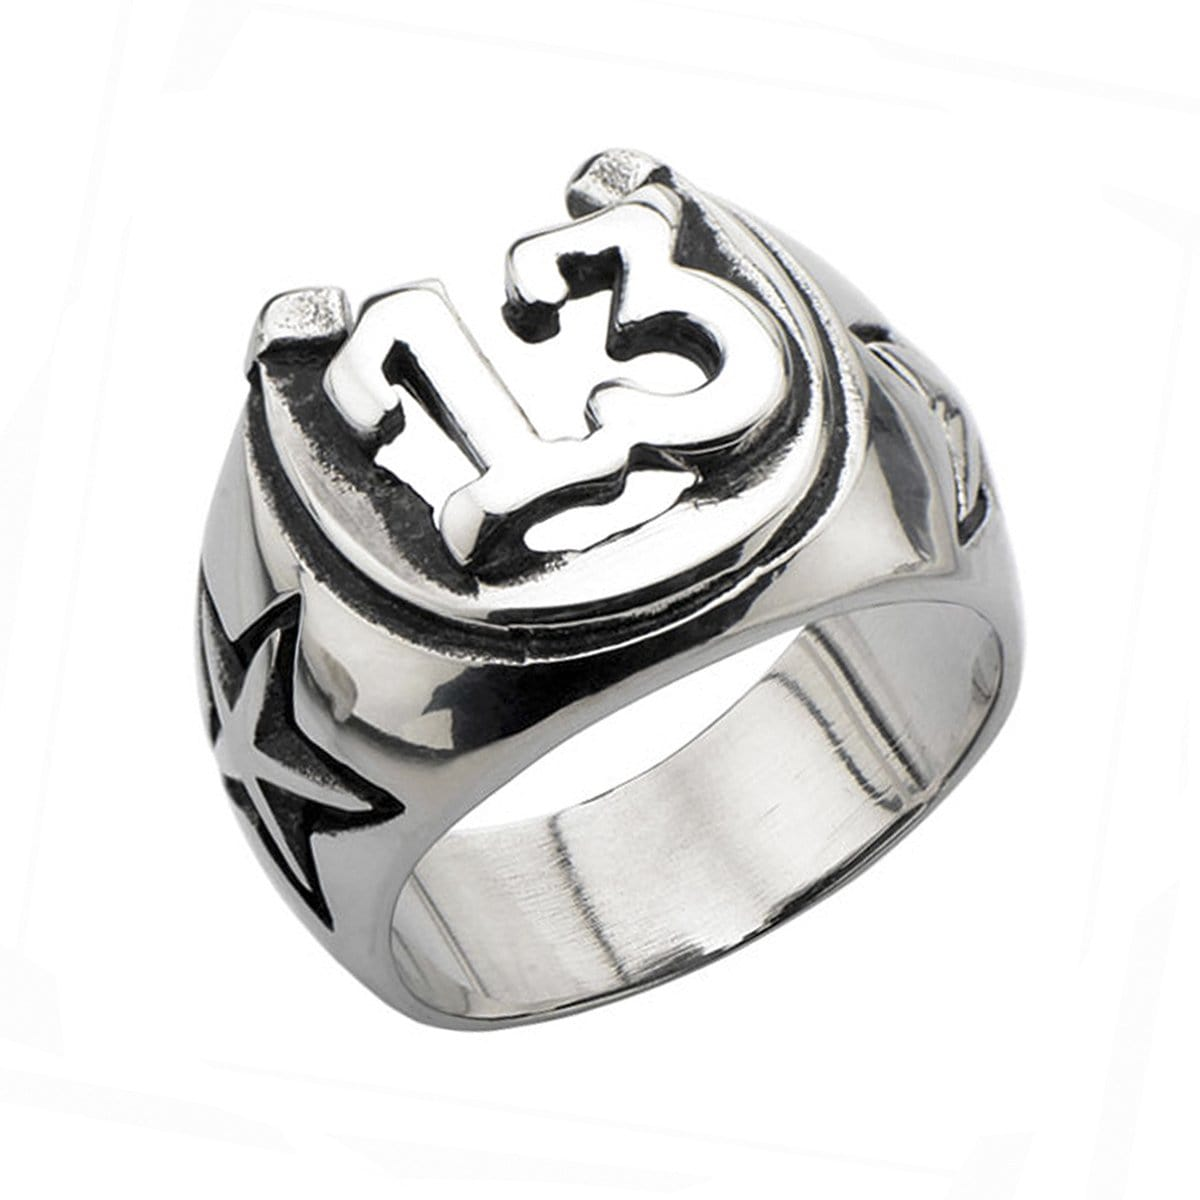 Darkened Silver Stainless Steel Lucky 13 Horseshoe Ring